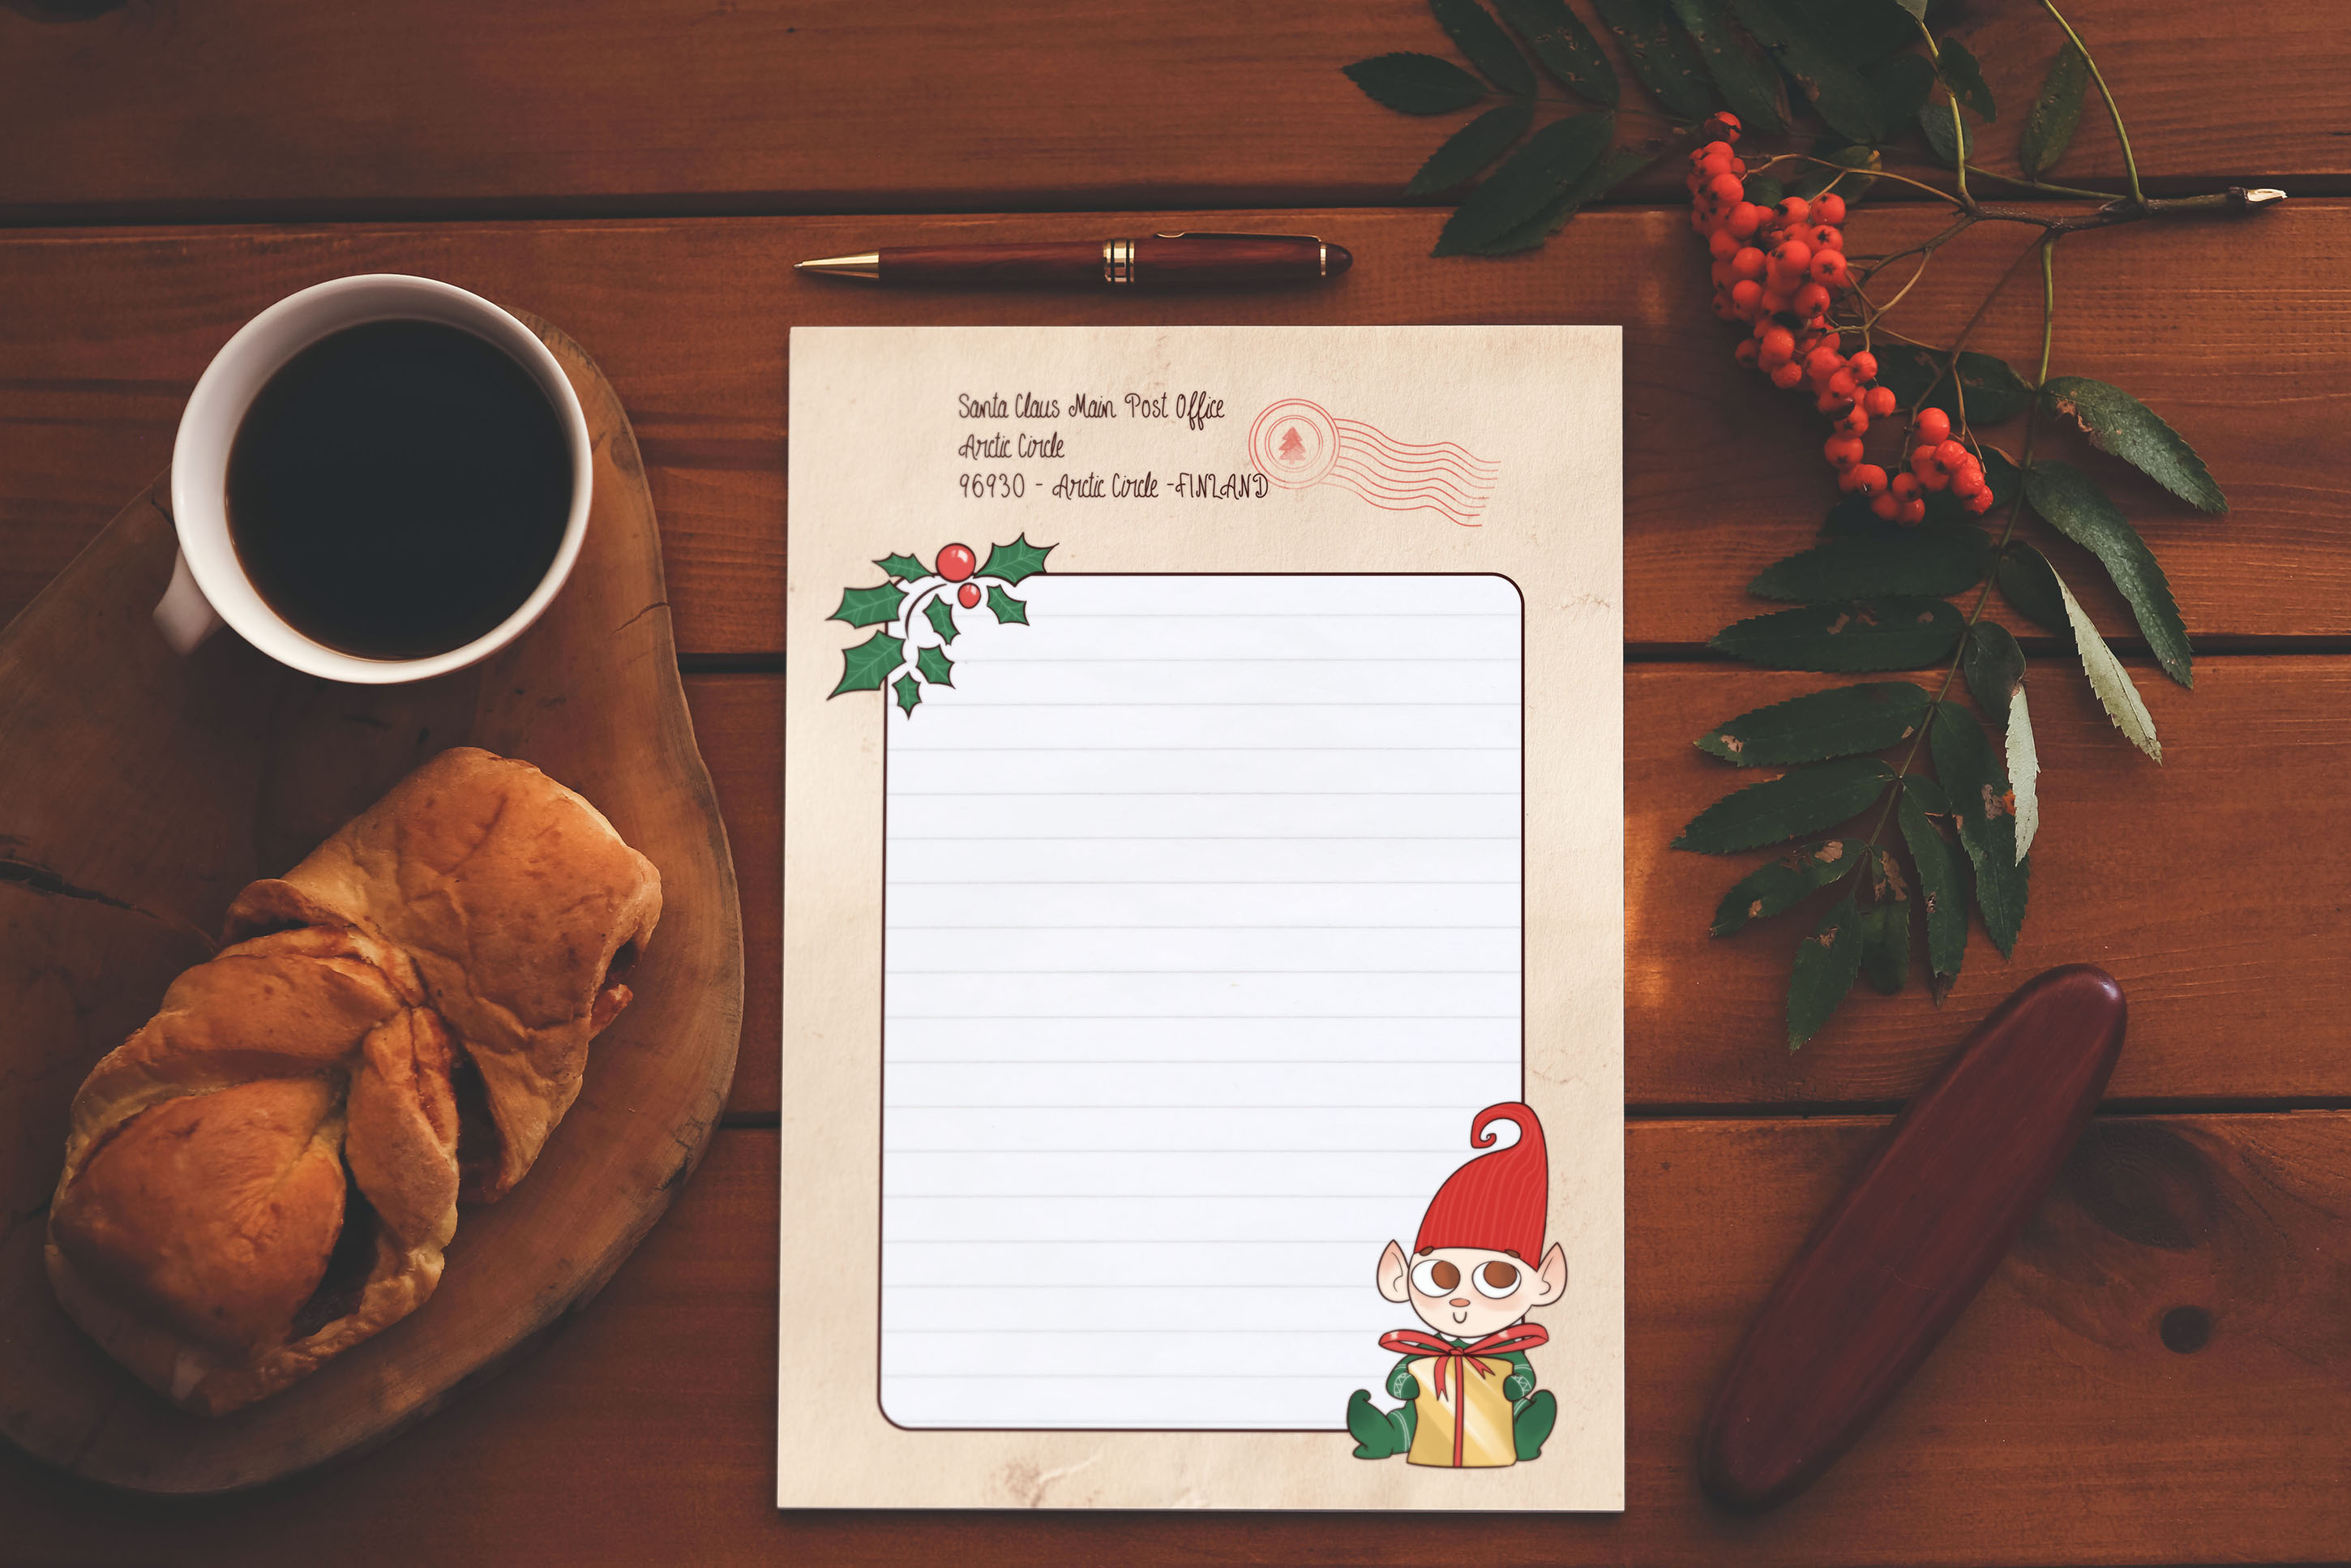 SANTA's LETTER TEMPLATE - Christmas letter by TdT example image 5